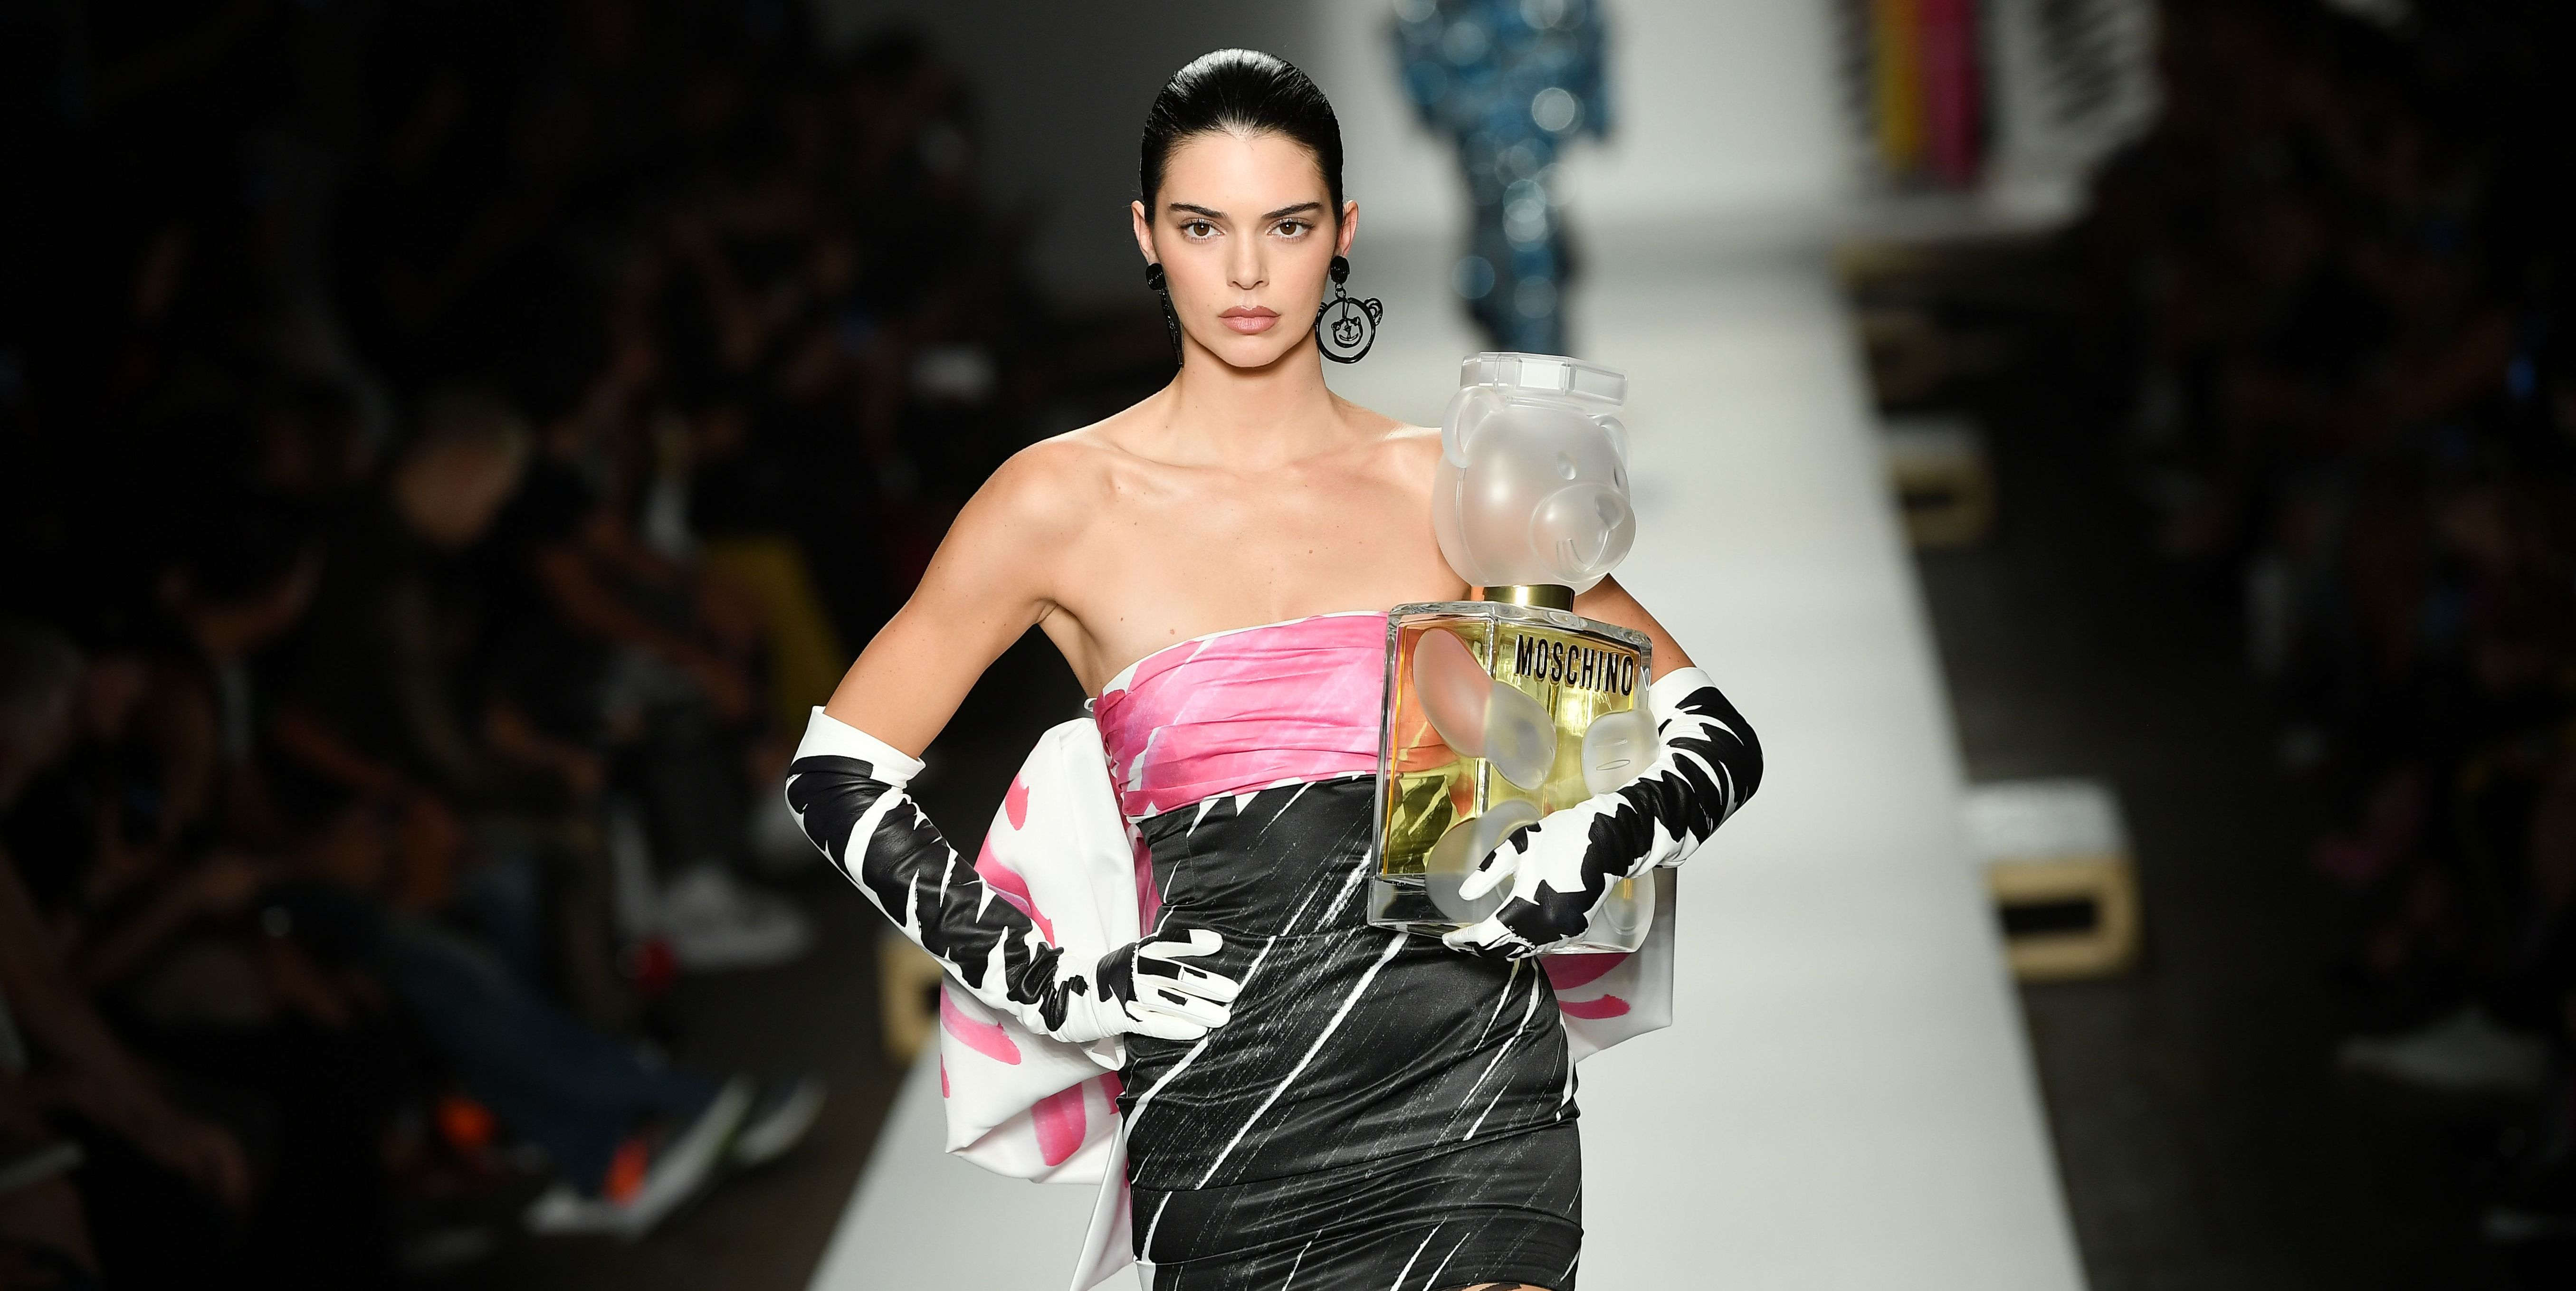 Kendall Jenner Is the Highest-Paid Model of 2018 After Earning $22.5 Million in a Year